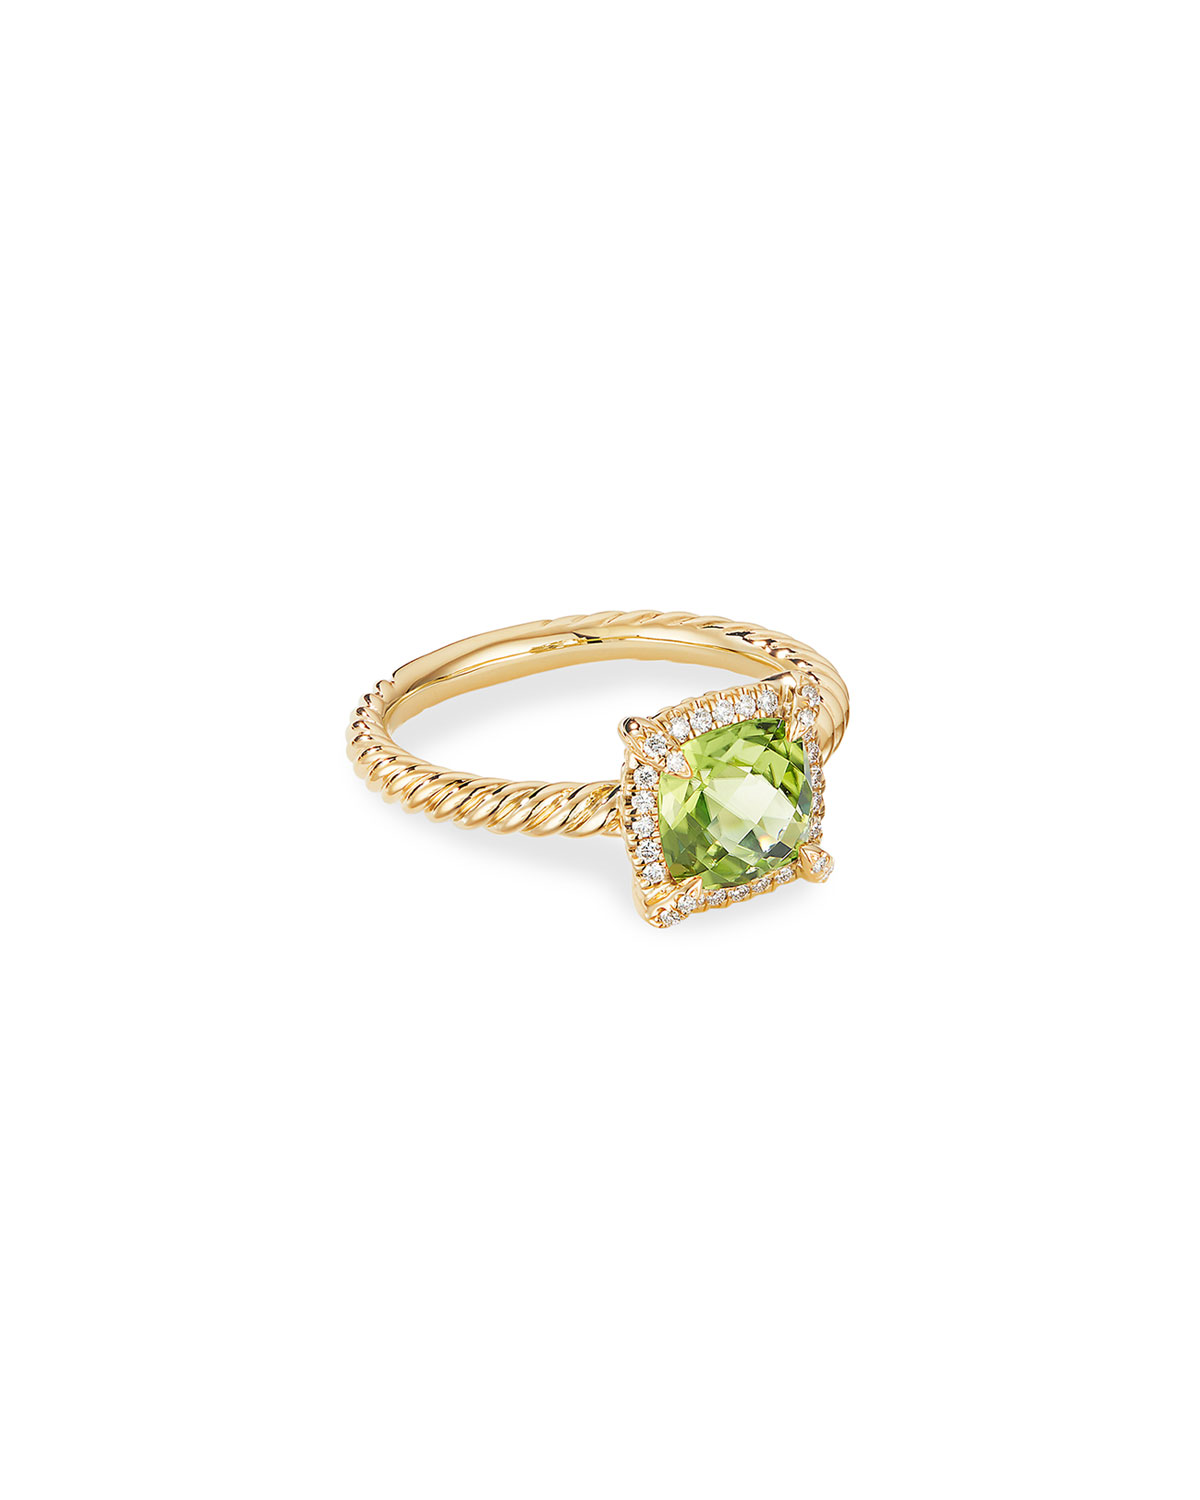 David Yurman Petite Chatelaine Pave Bezel Ring in 18K Gold with Peridot, Size 9